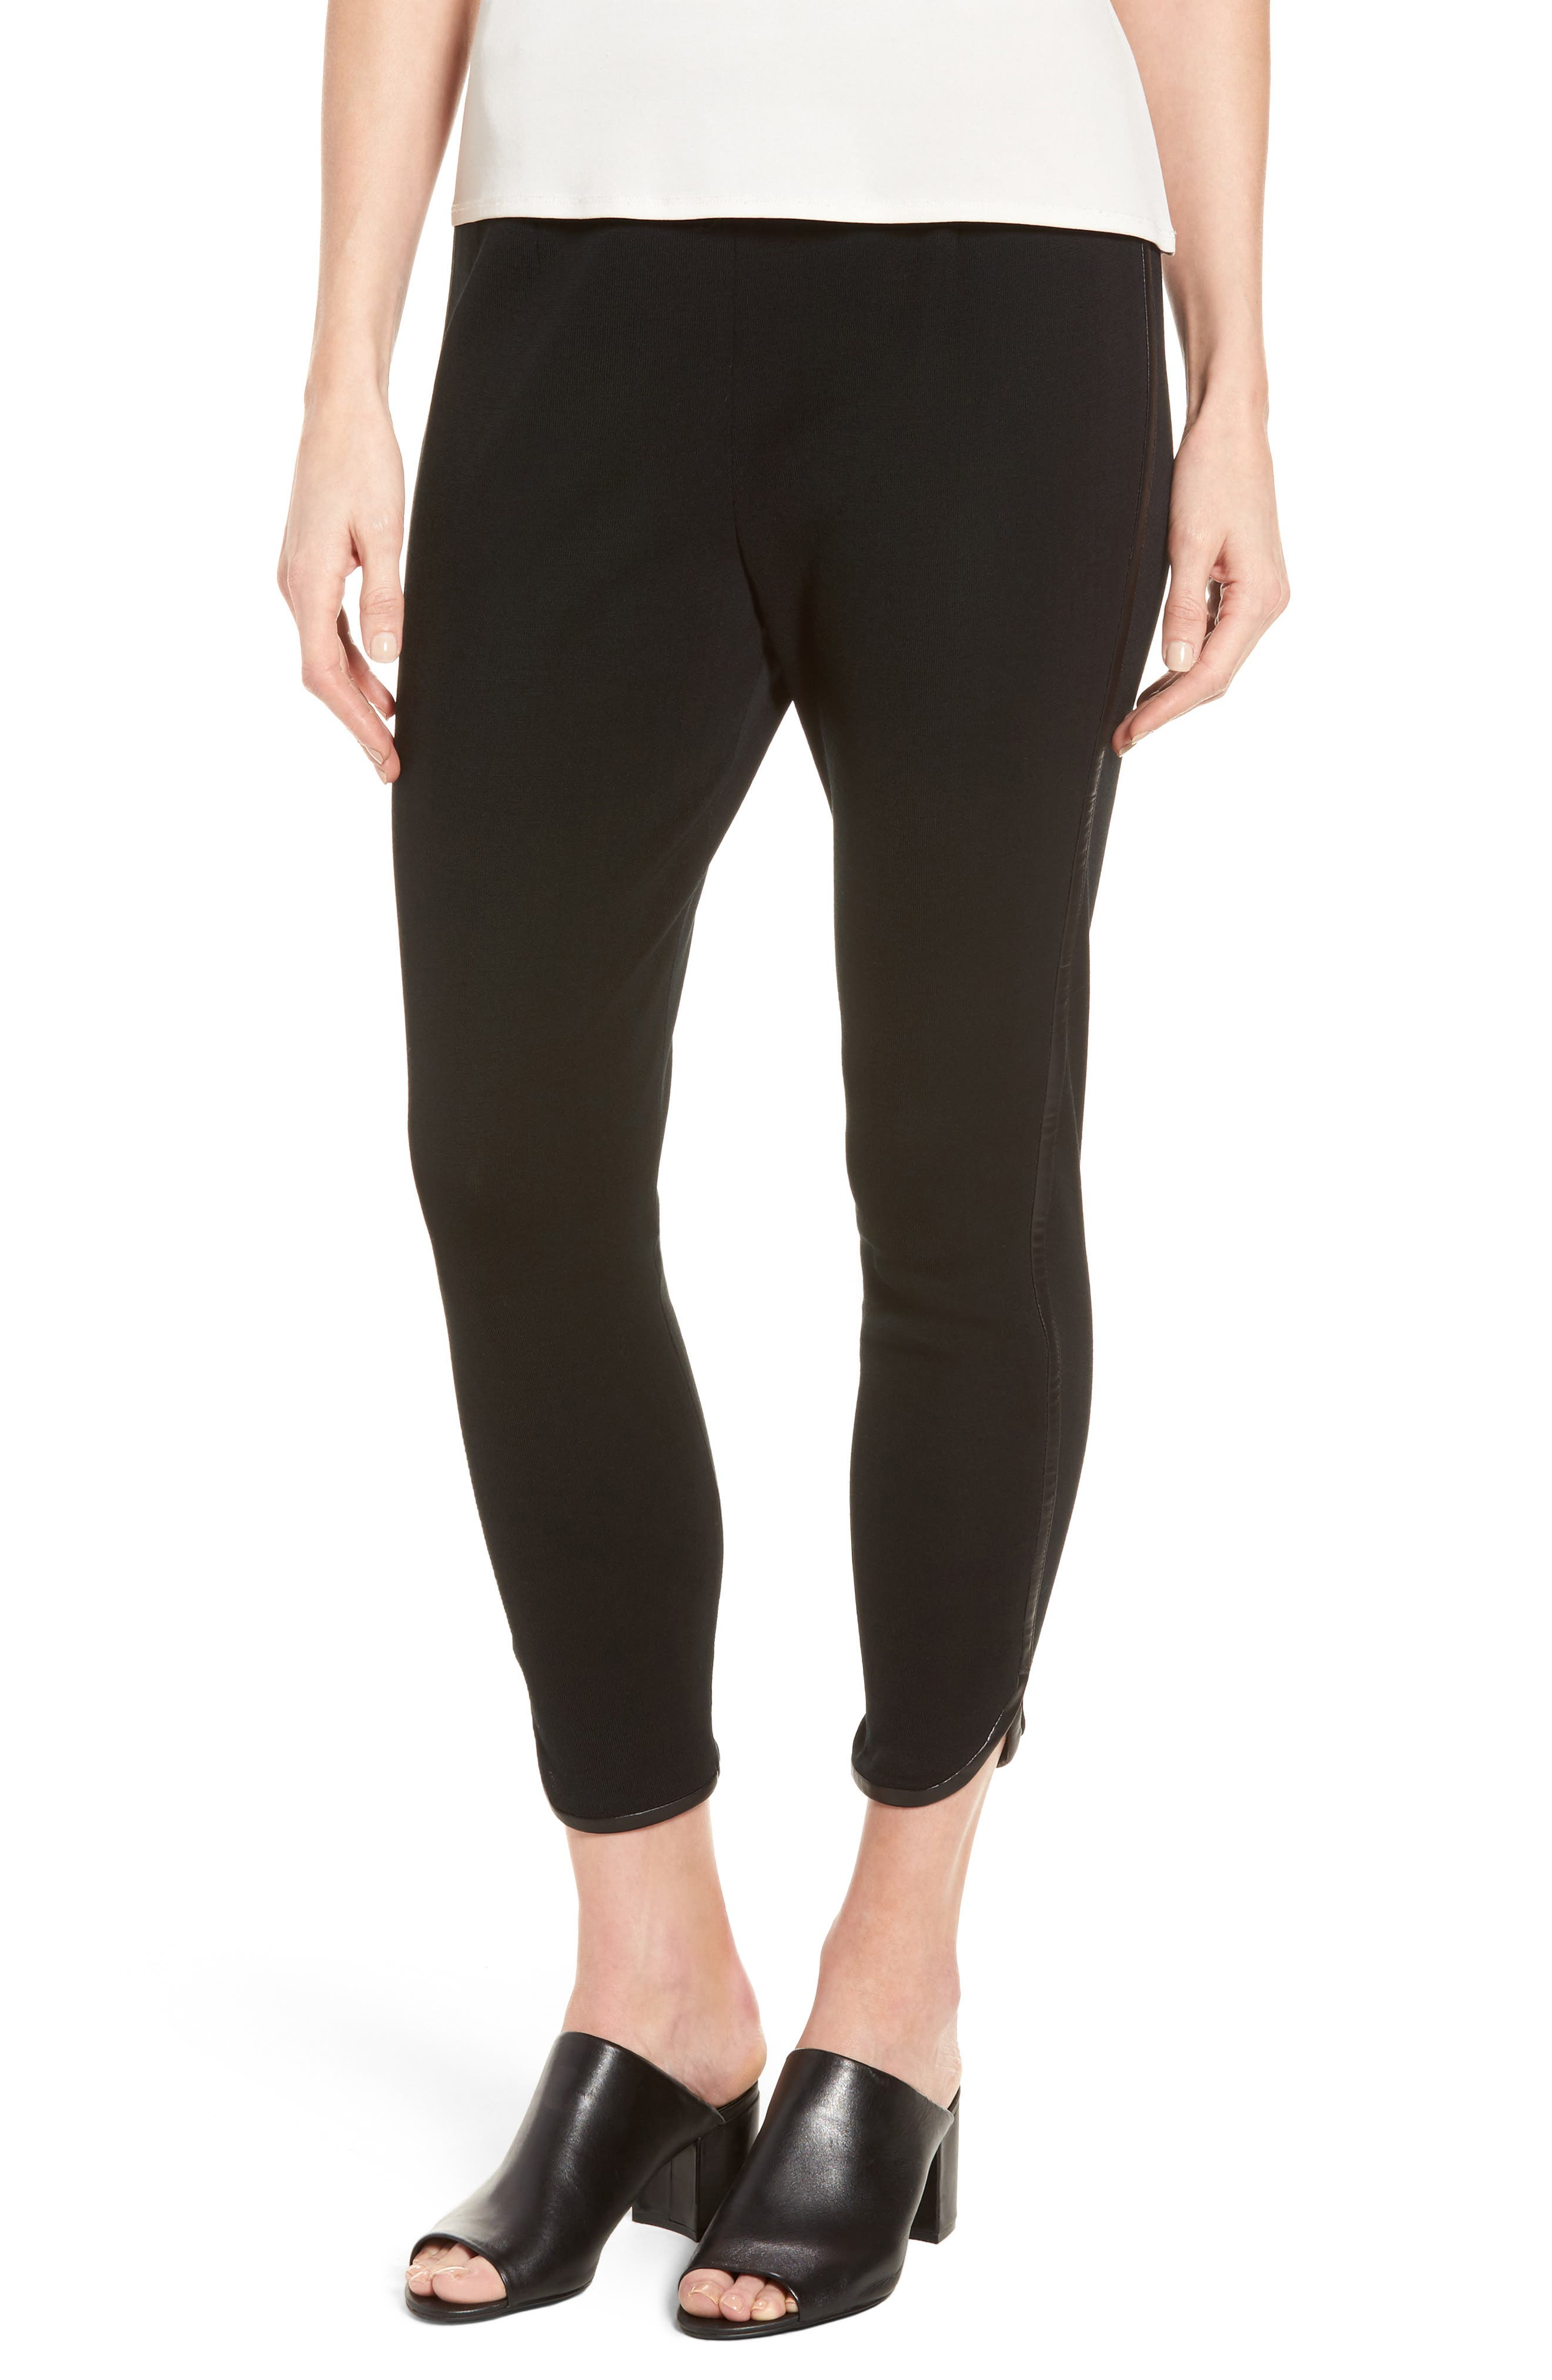 Alternate Image 1 Selected - Ming Wang Faux Leather Trim Leggings